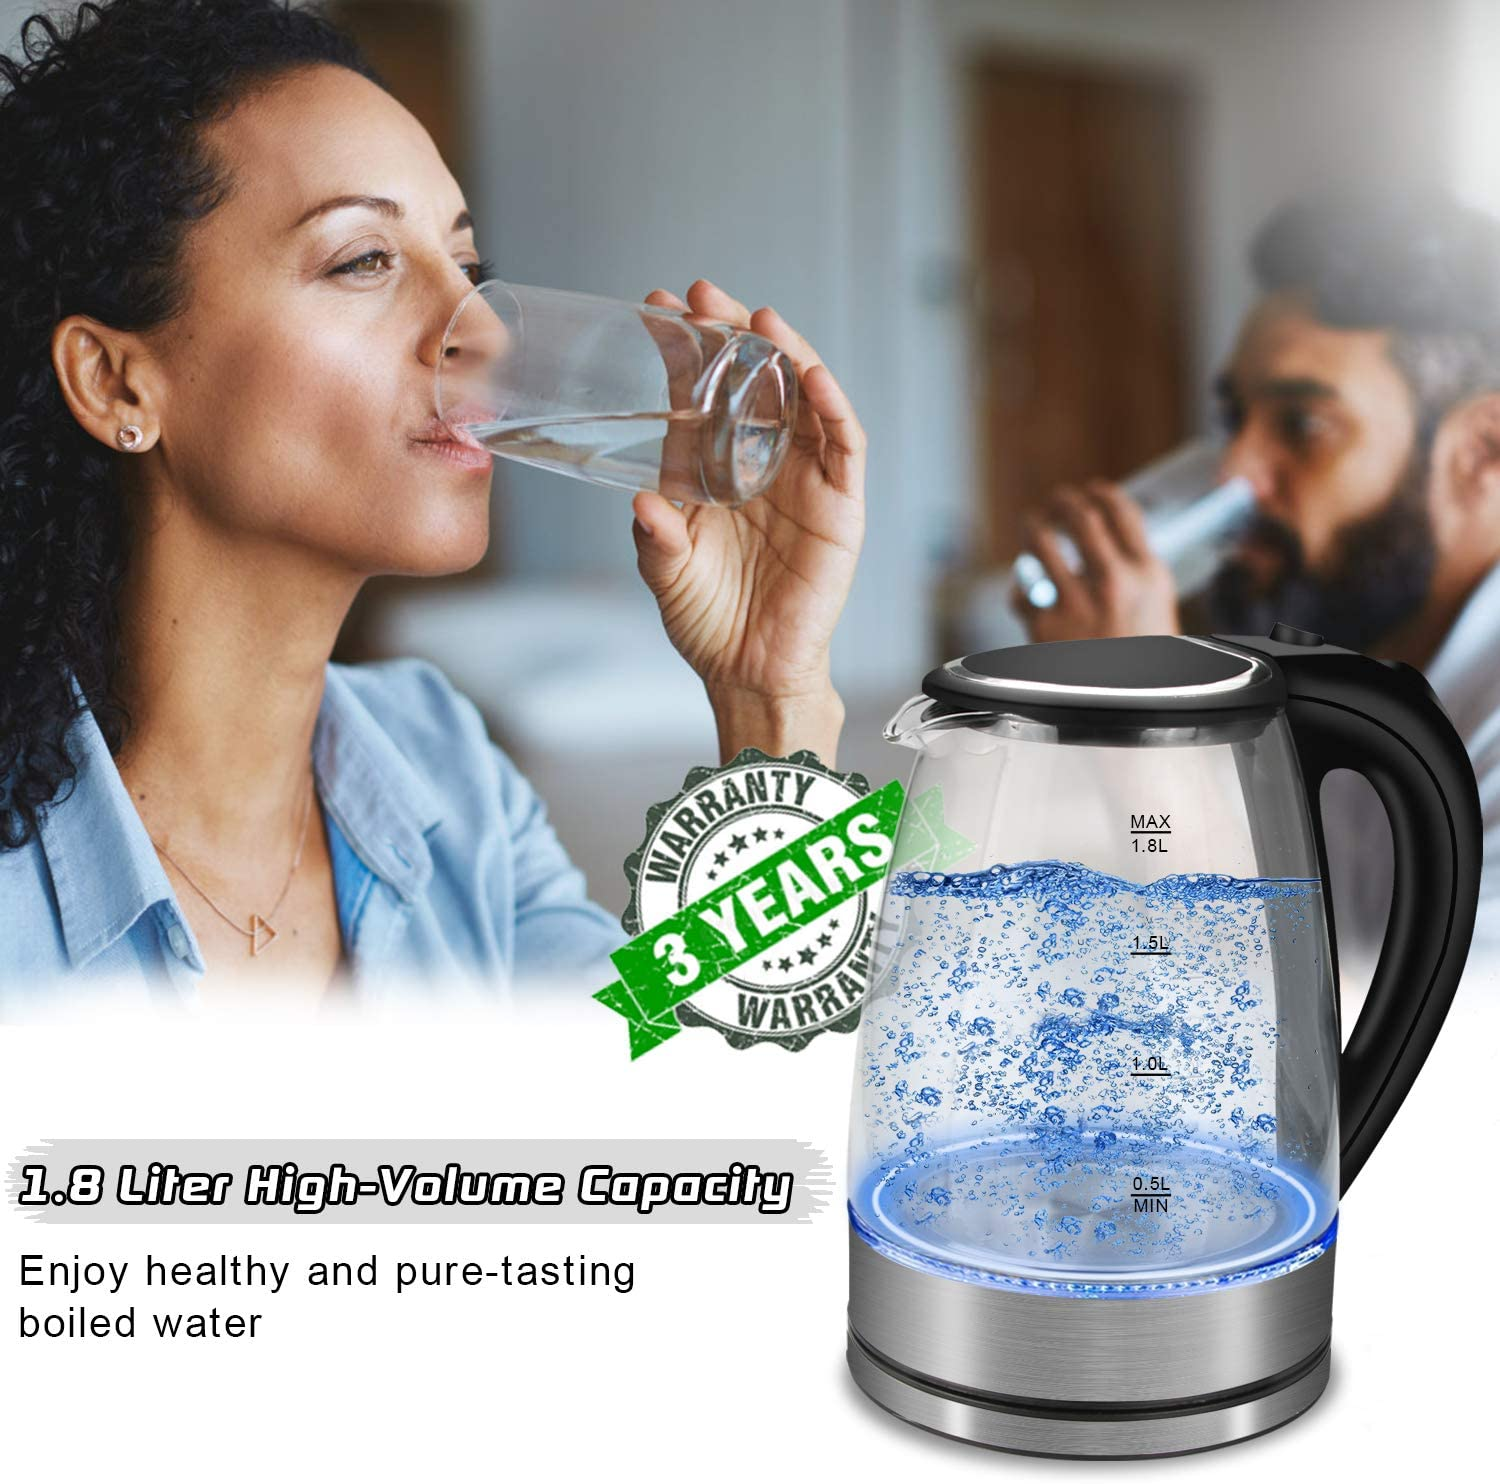 Auto-Off /& Boil-Dry Protection BPA-Free 1.8L Fast Boil Water Kettle 2200W with Illuminated LED LUOWAN Glass Electric Kettle